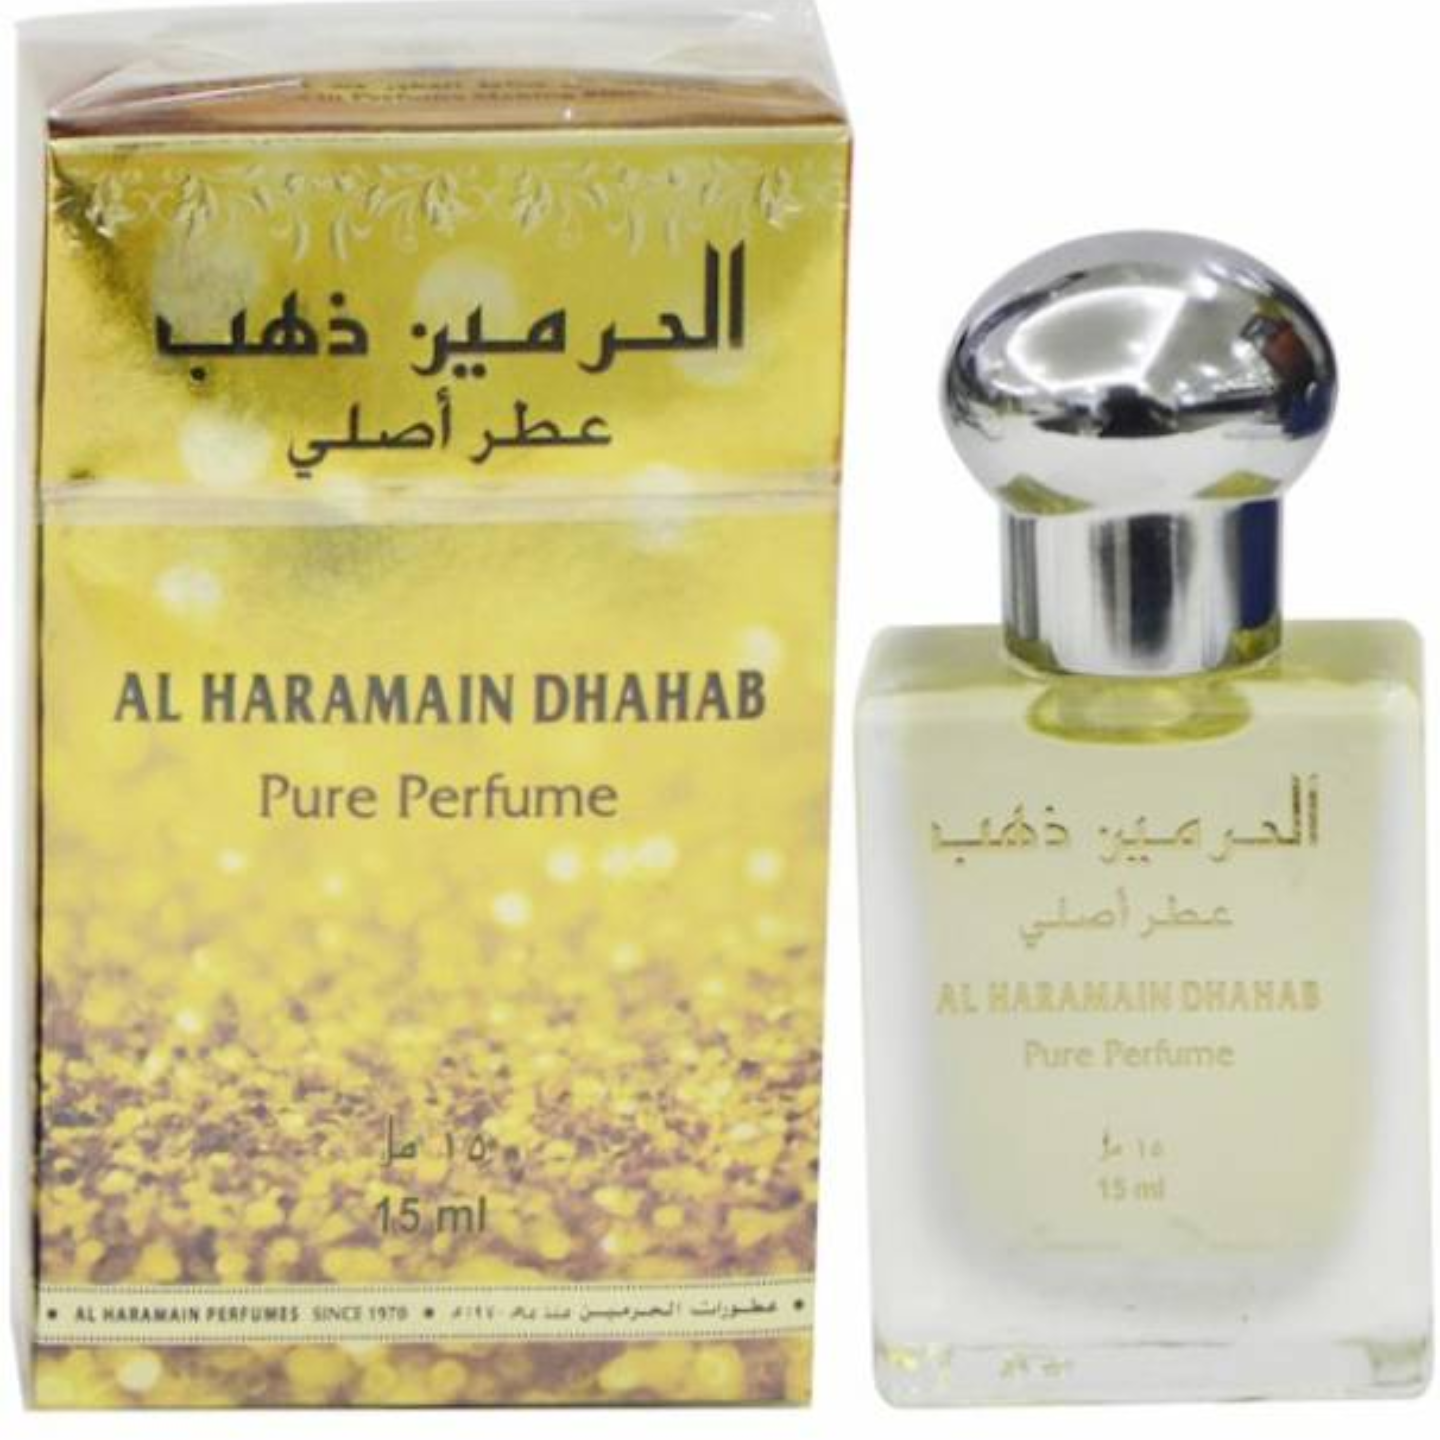 AL HARAMAIN DHAHAB ATTAR